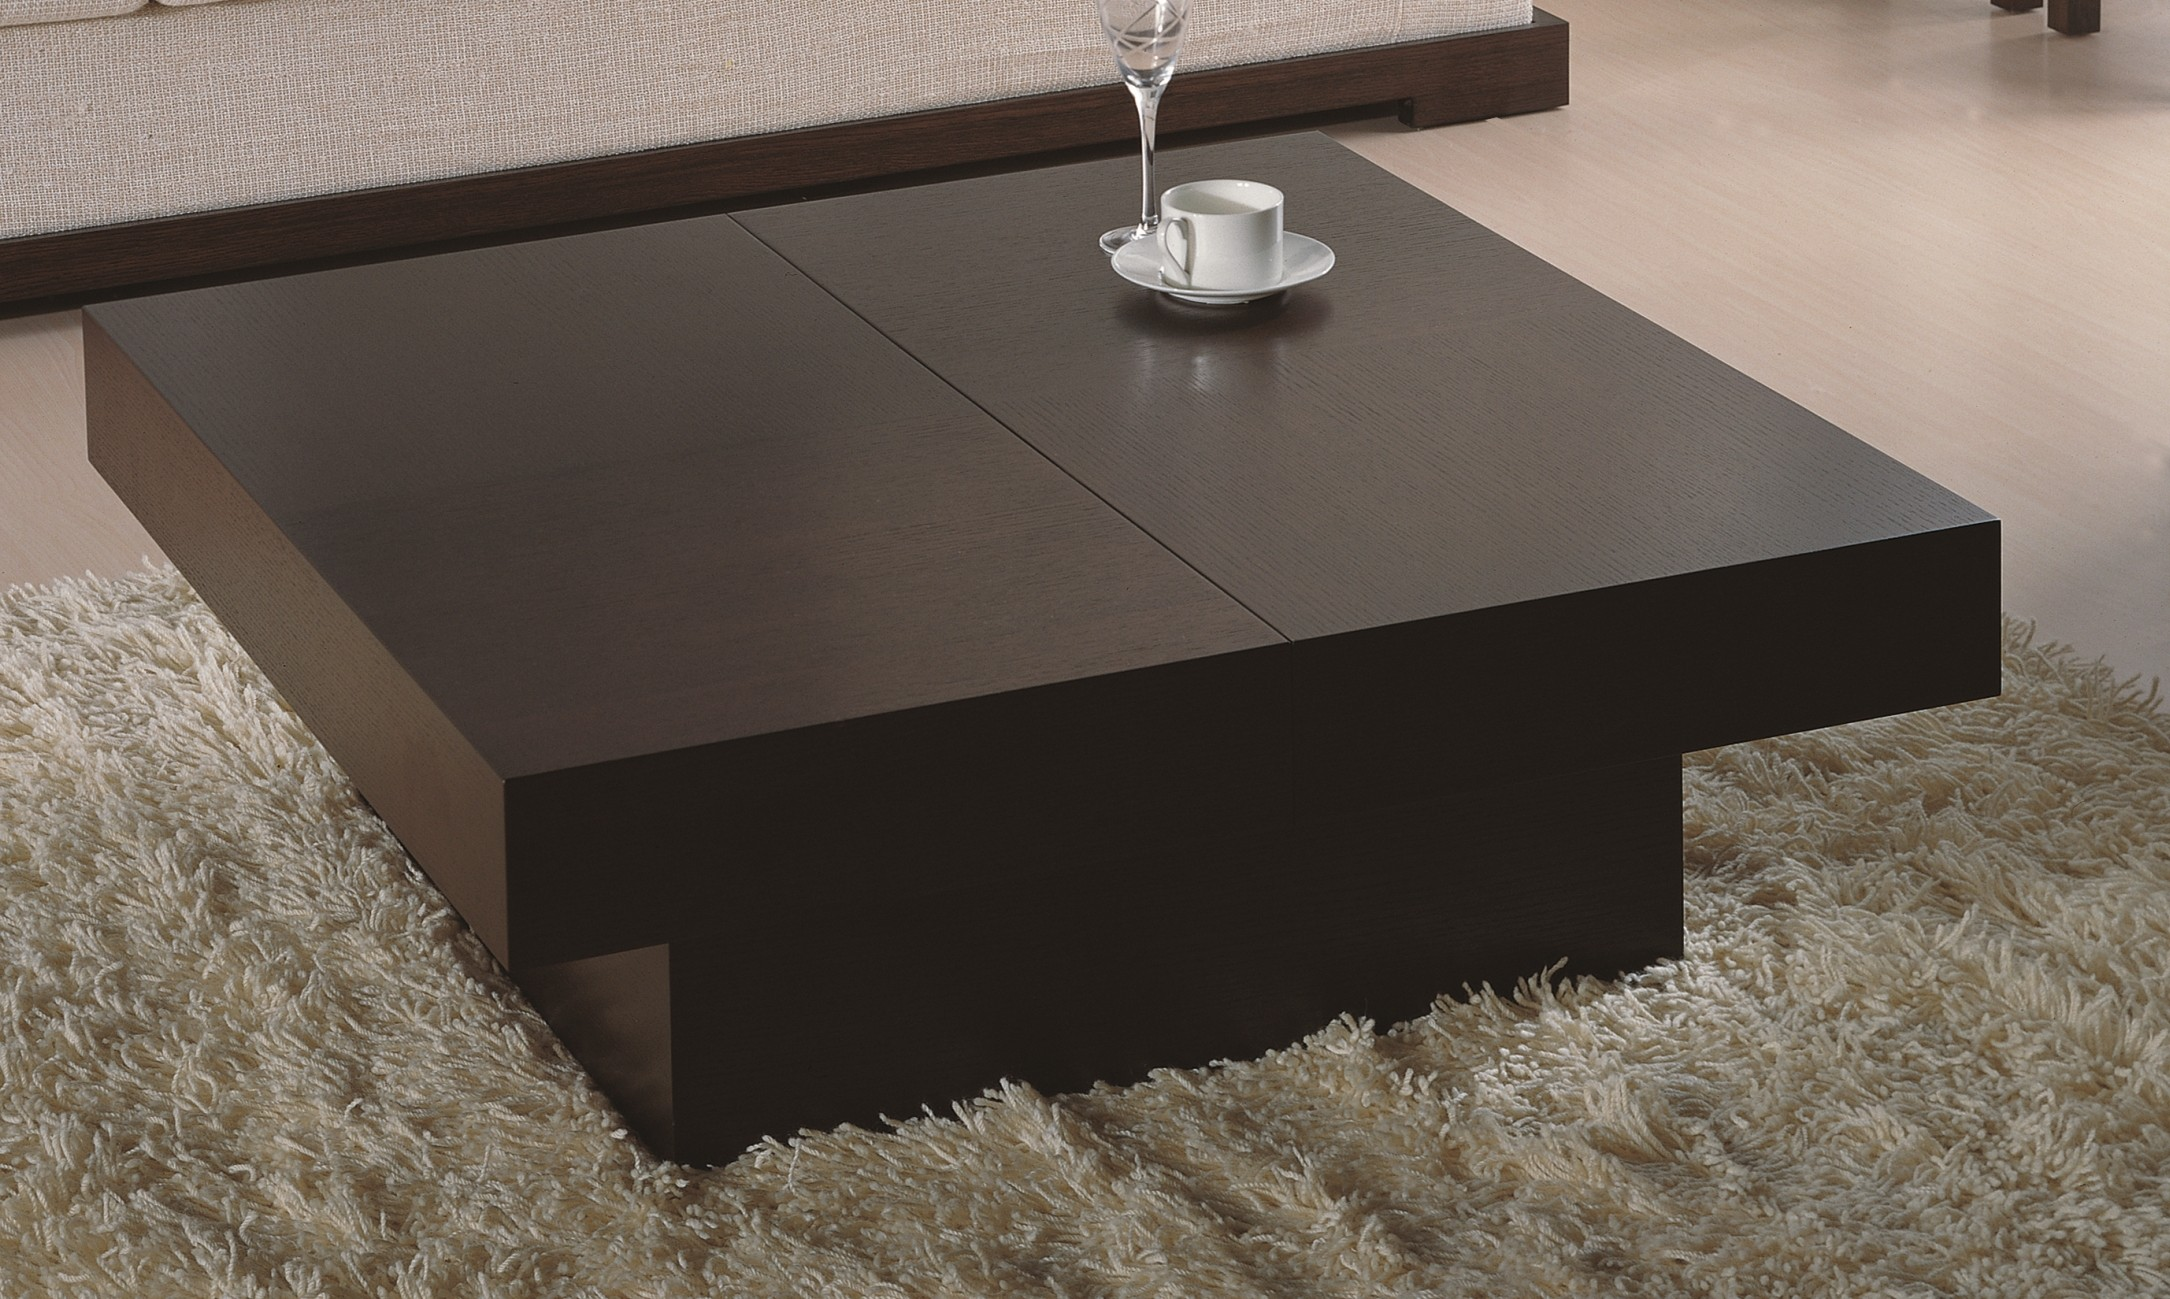 Modern Square Coffee Table in Wenge Finish w/ Hidden Storage